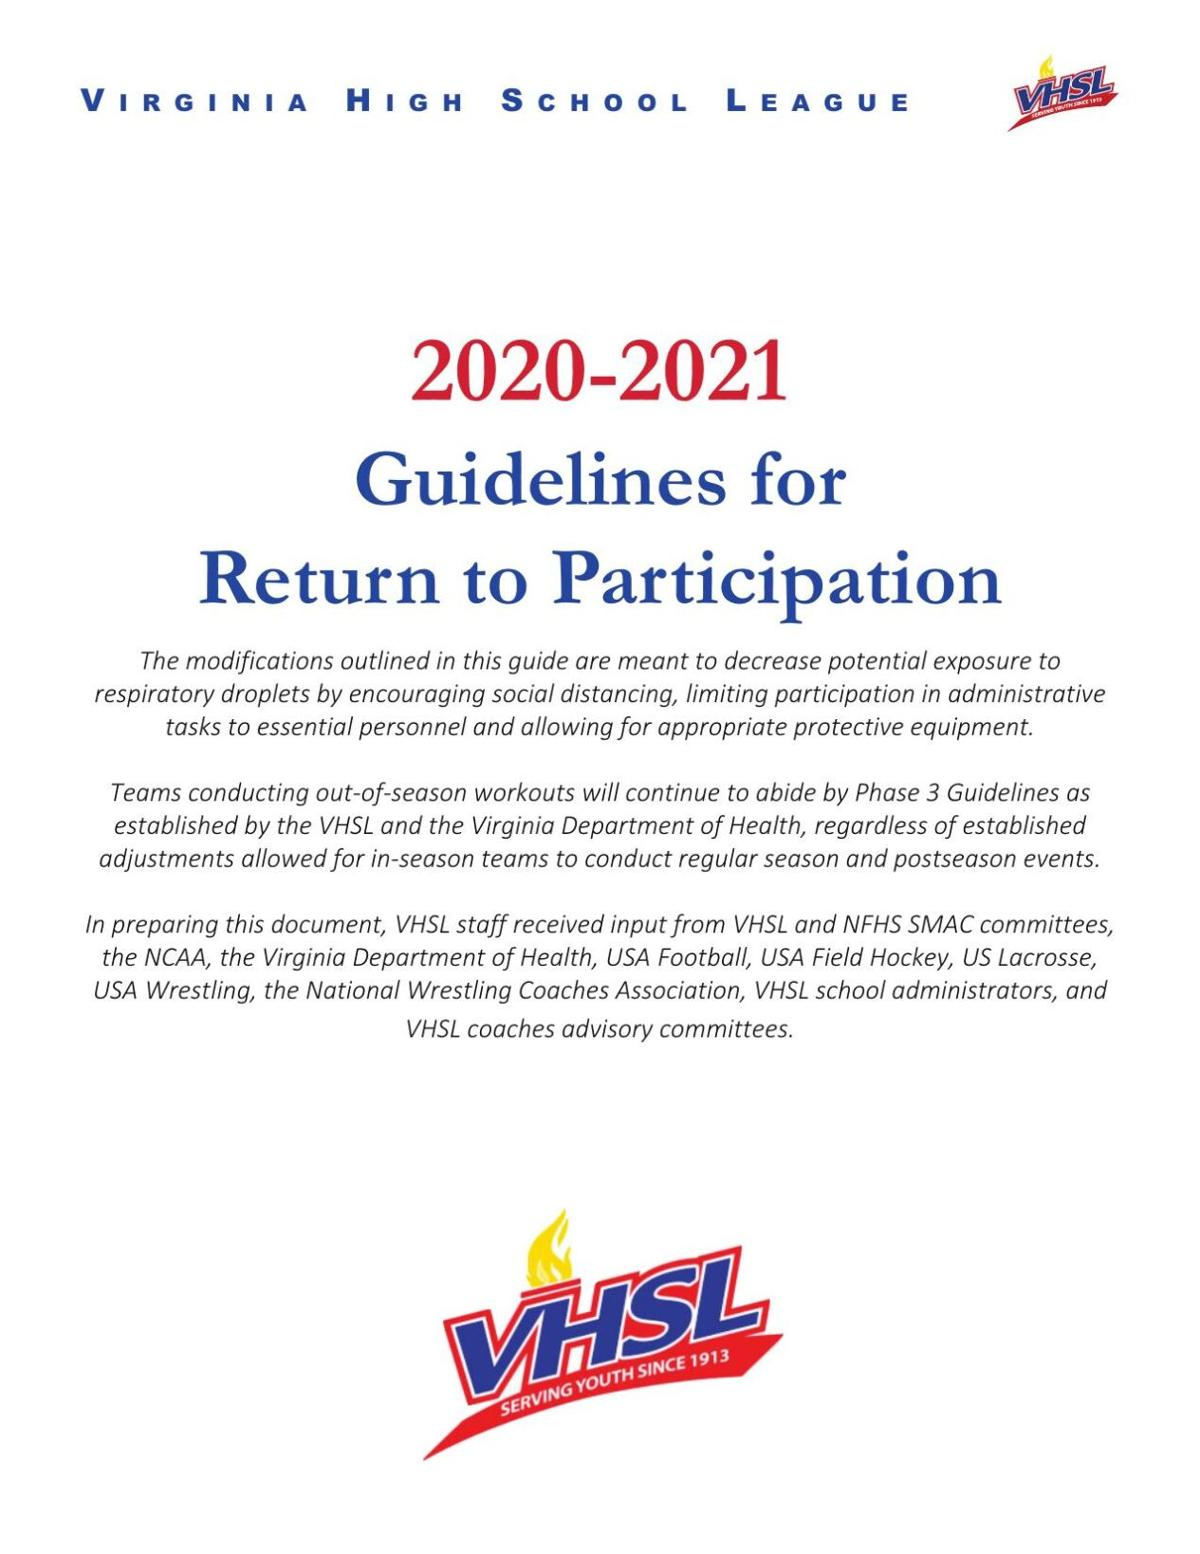 VHSL Recommendations to Return to Play 2020-21